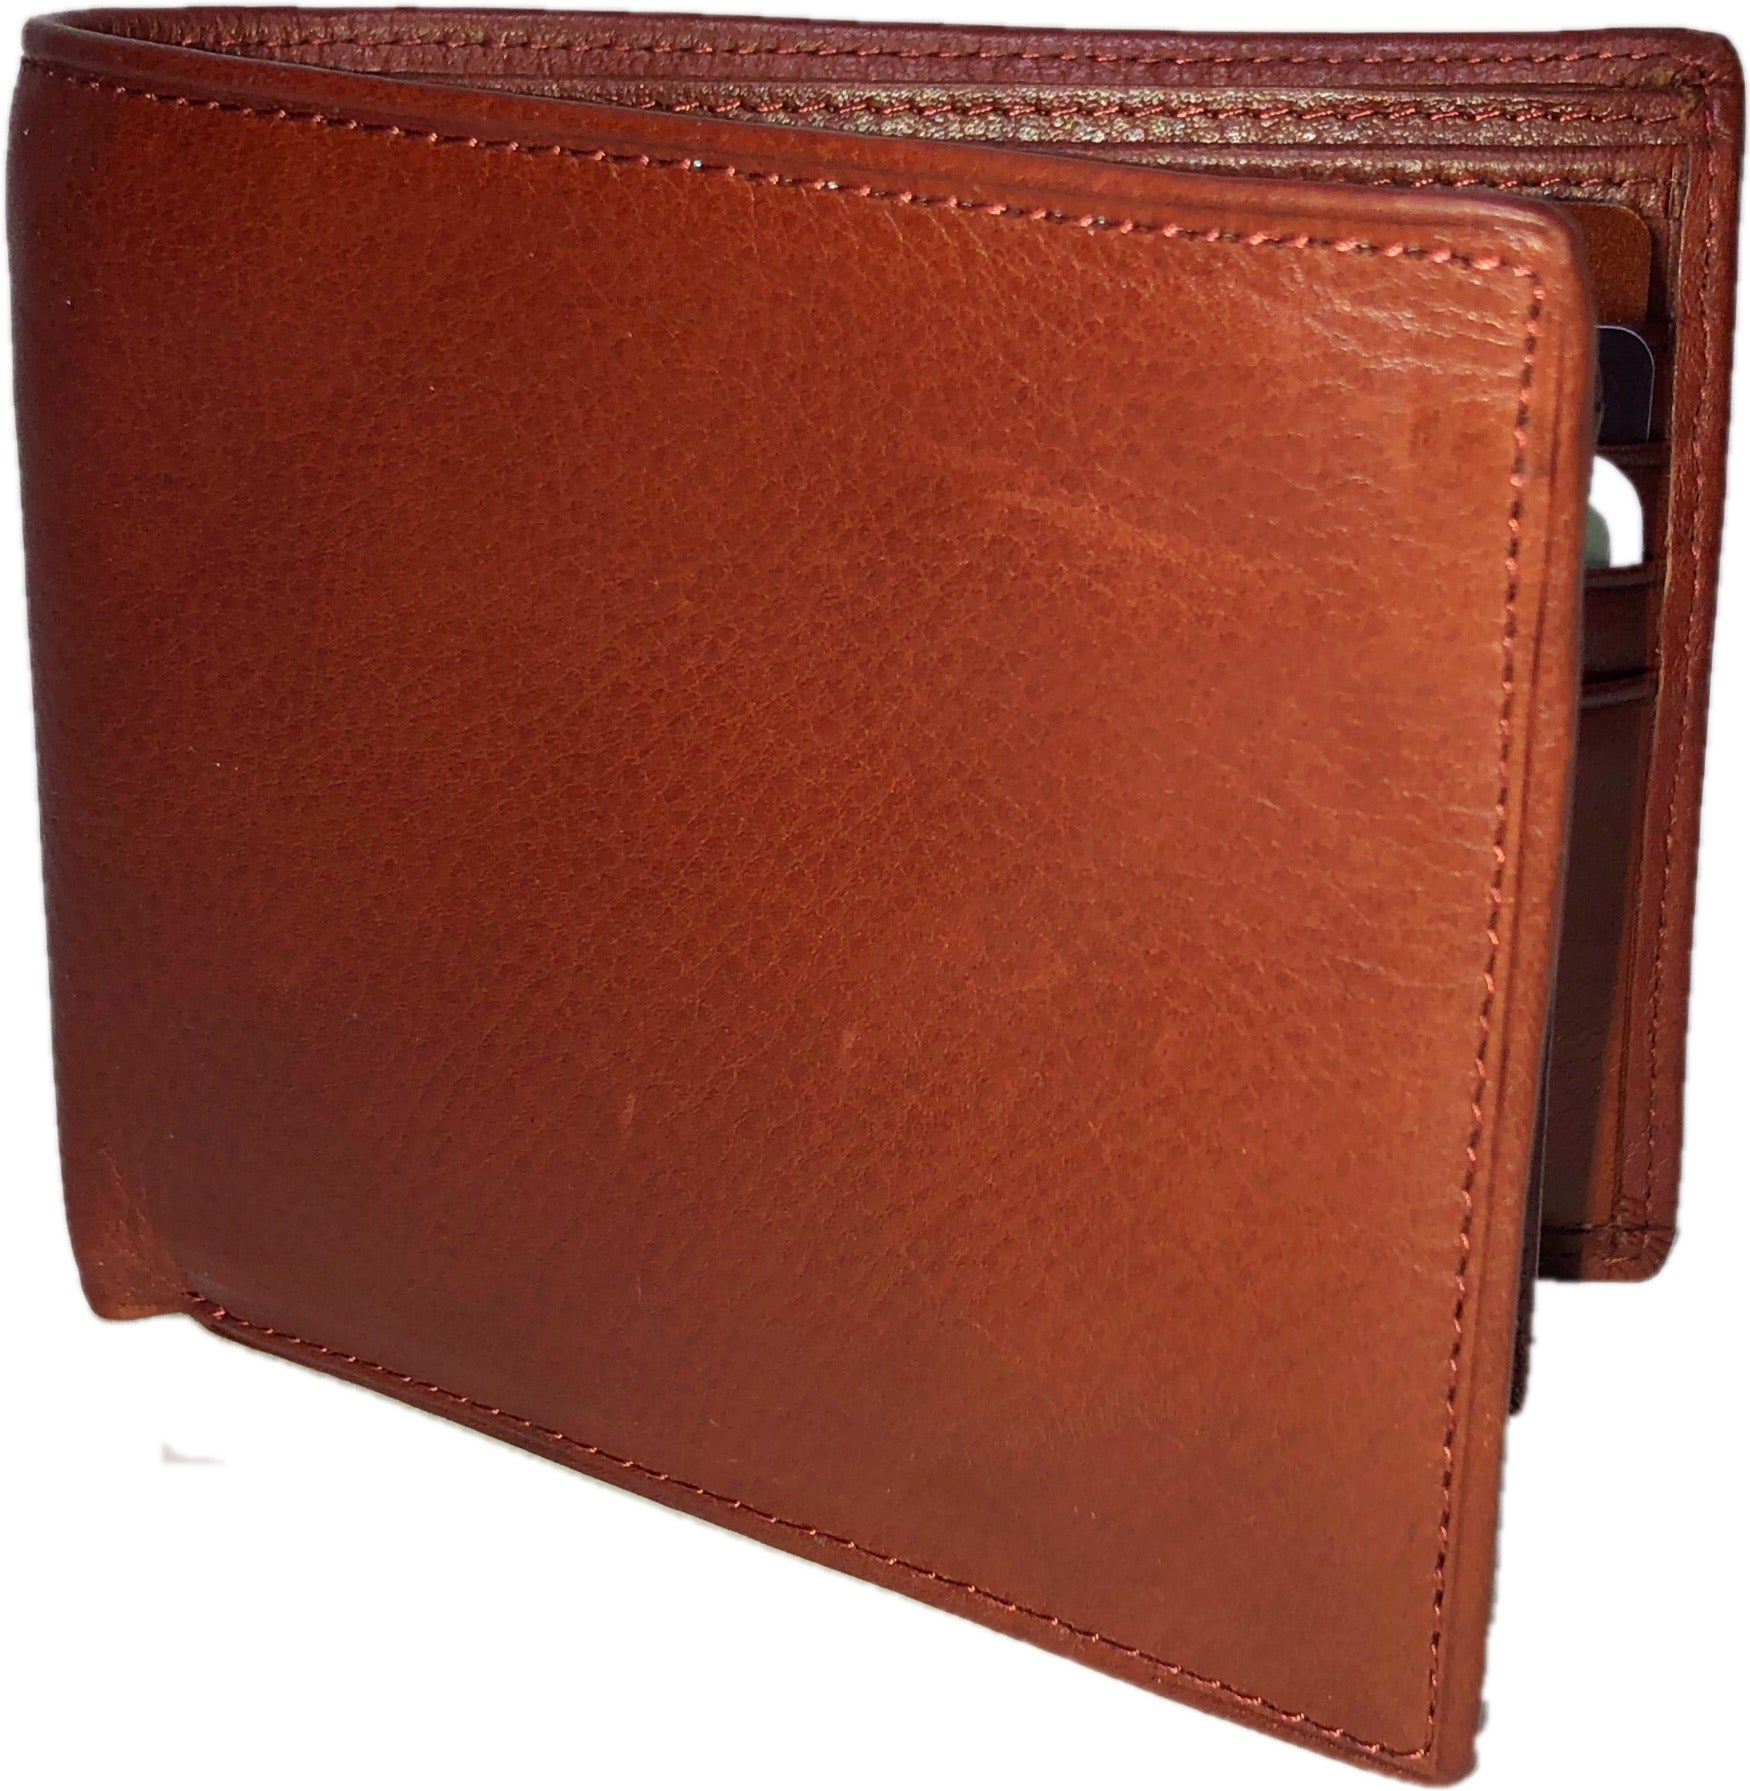 1241 RFID Security Passcase Brandy